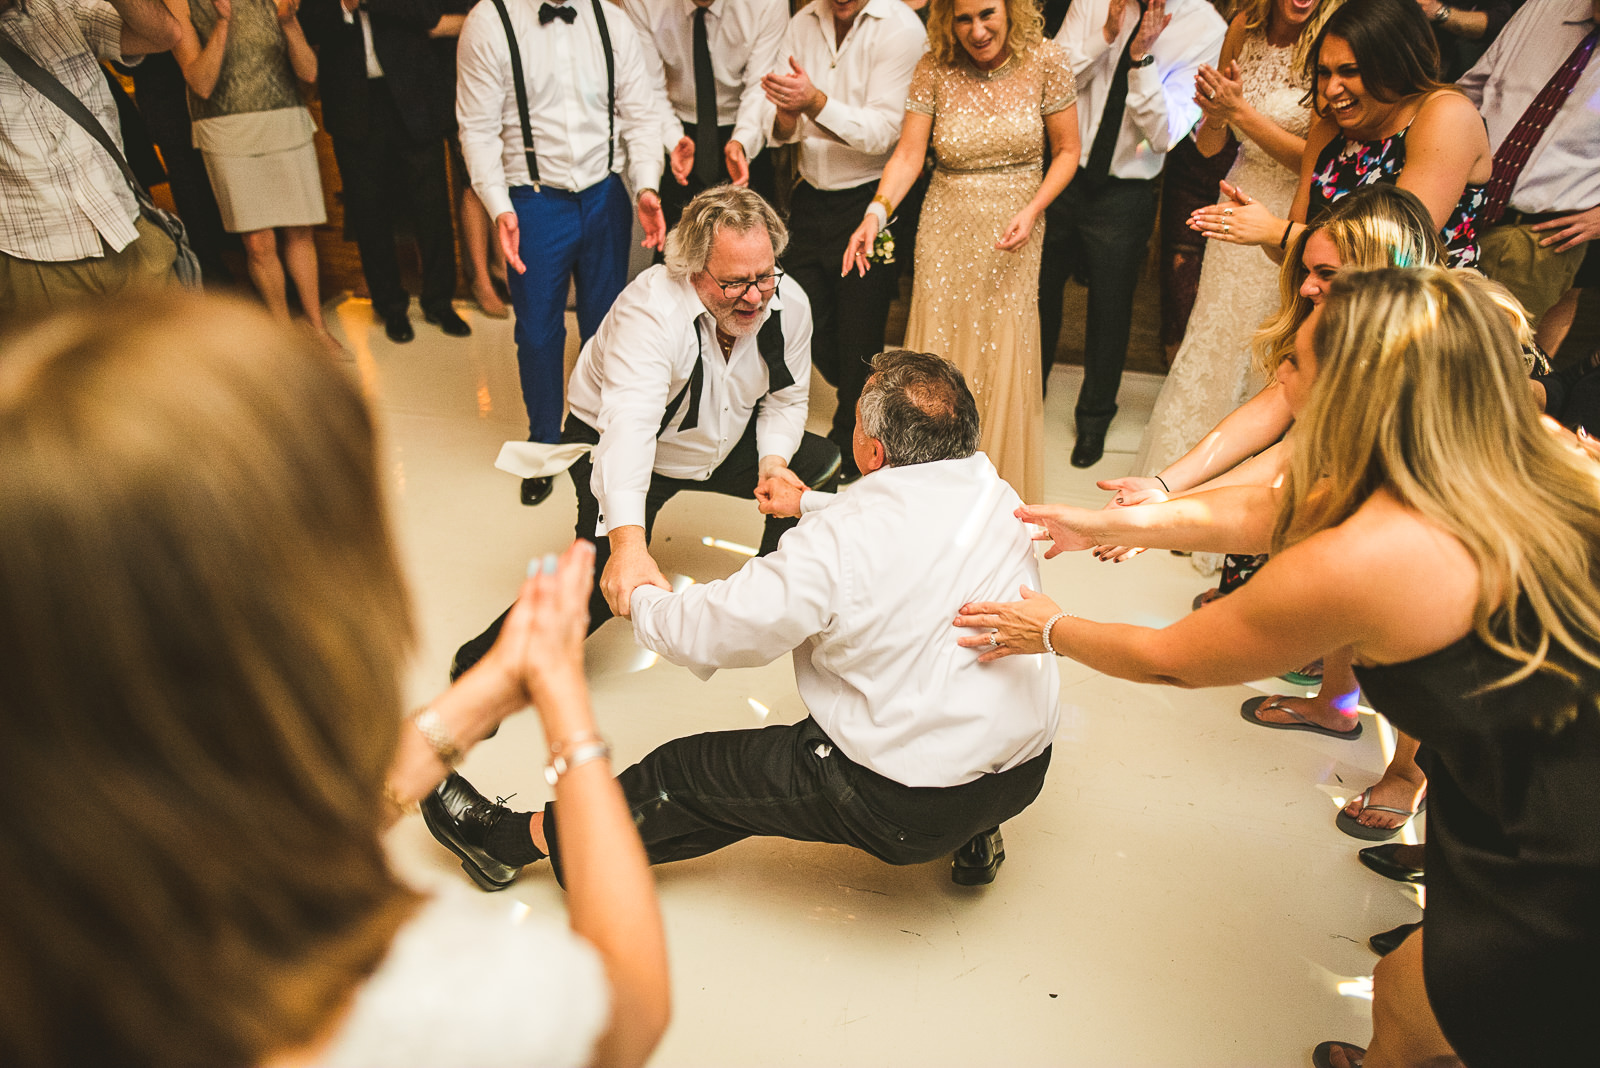 87 dads dancing at wedding - Chicago Wedding Photography at Gallery 1028 // Courtnie + David